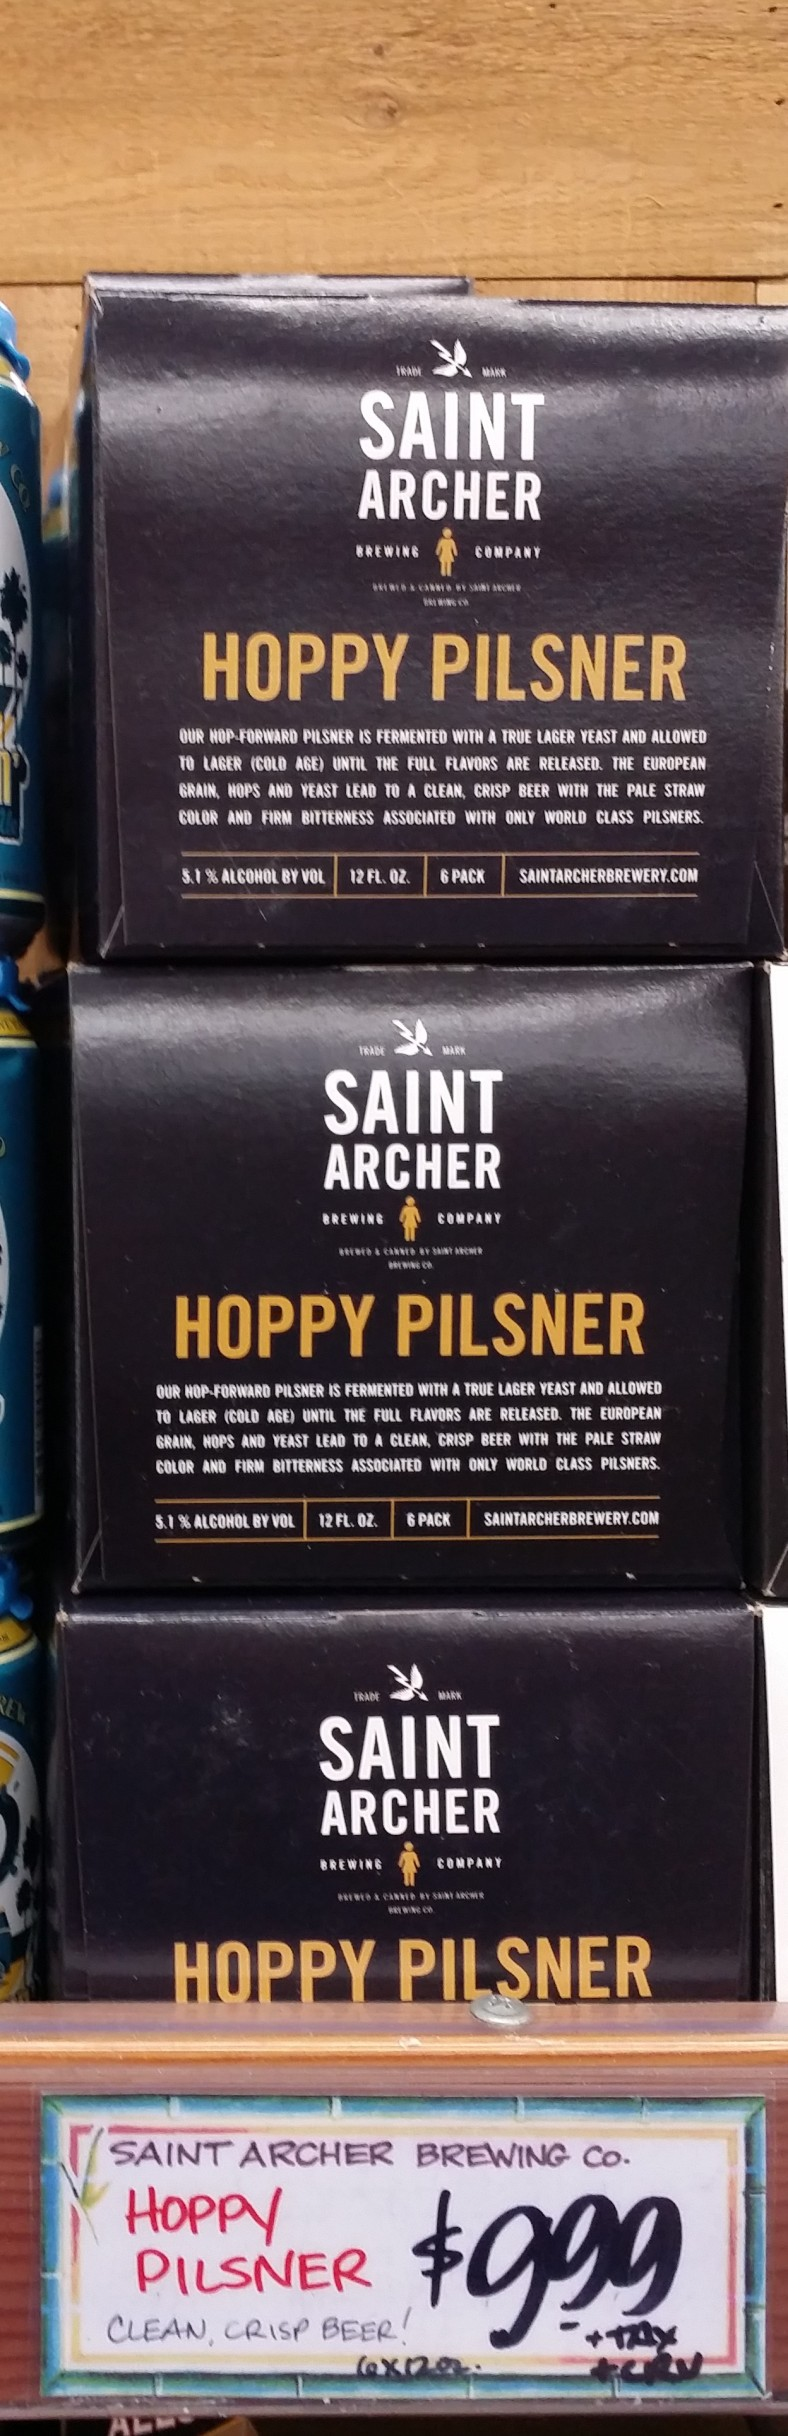 Saint Archer Hoppy Pilsner